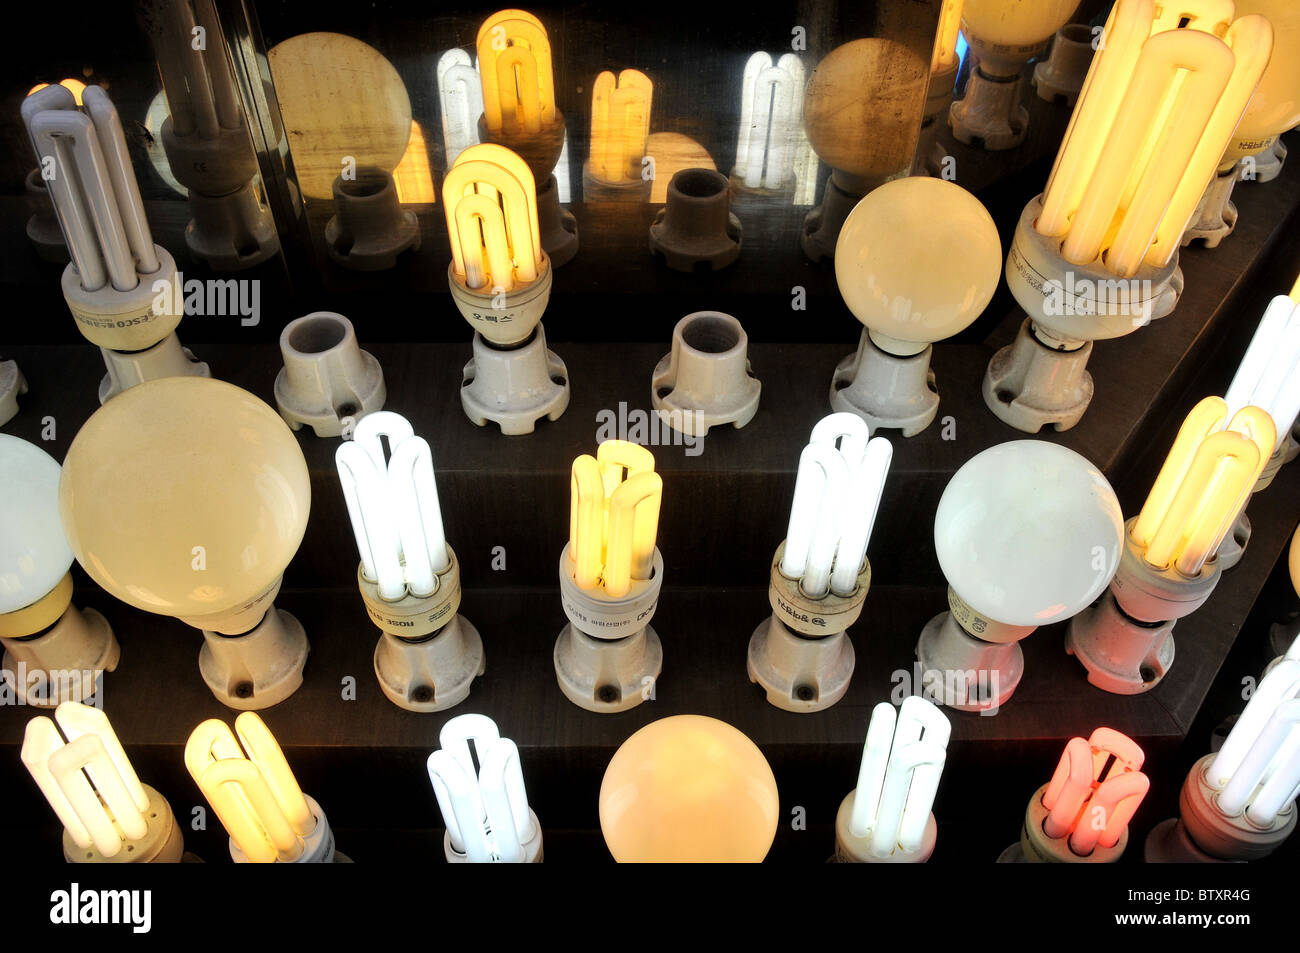 Energy Efficient Light Bulb, Light Store, Seoul, South Korea   Stock Image